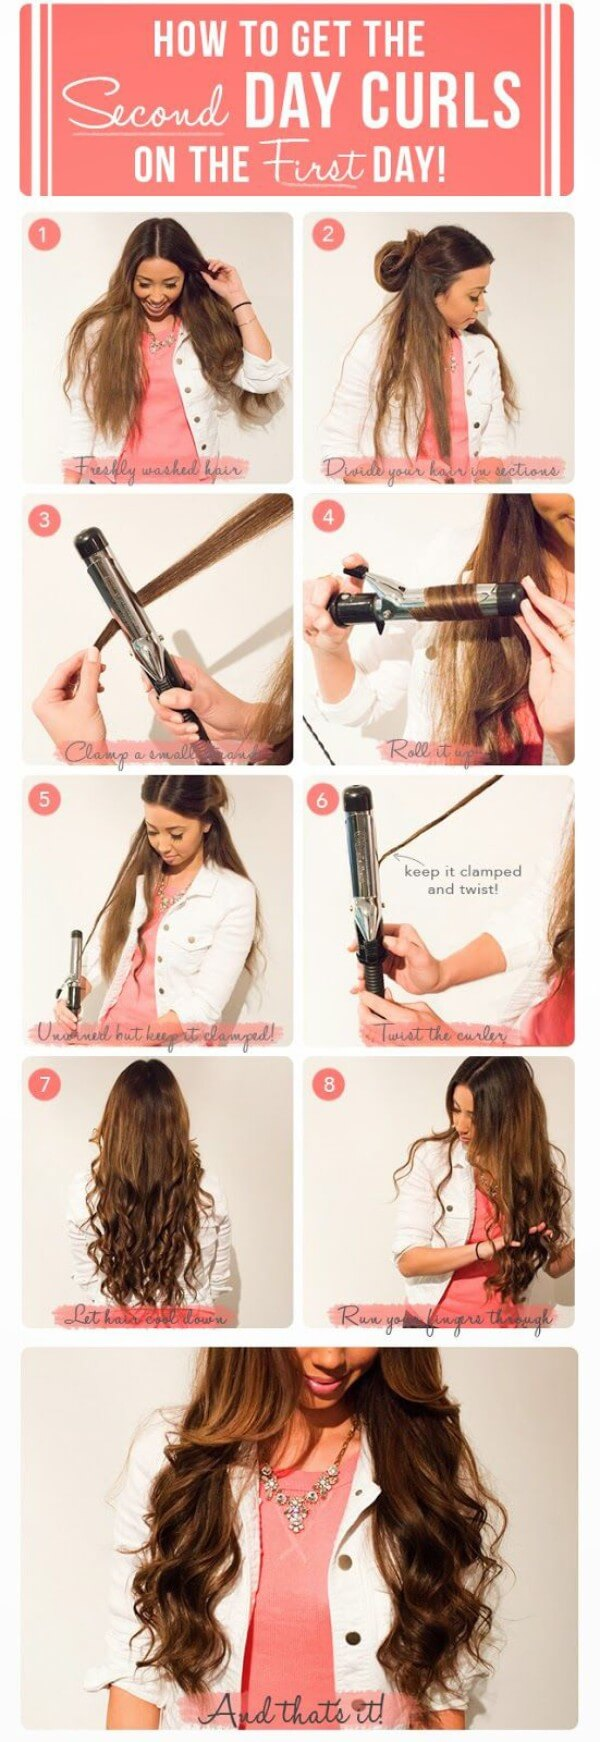 Textured Curls learn how to Curl Your Hairs Step by Step Guide